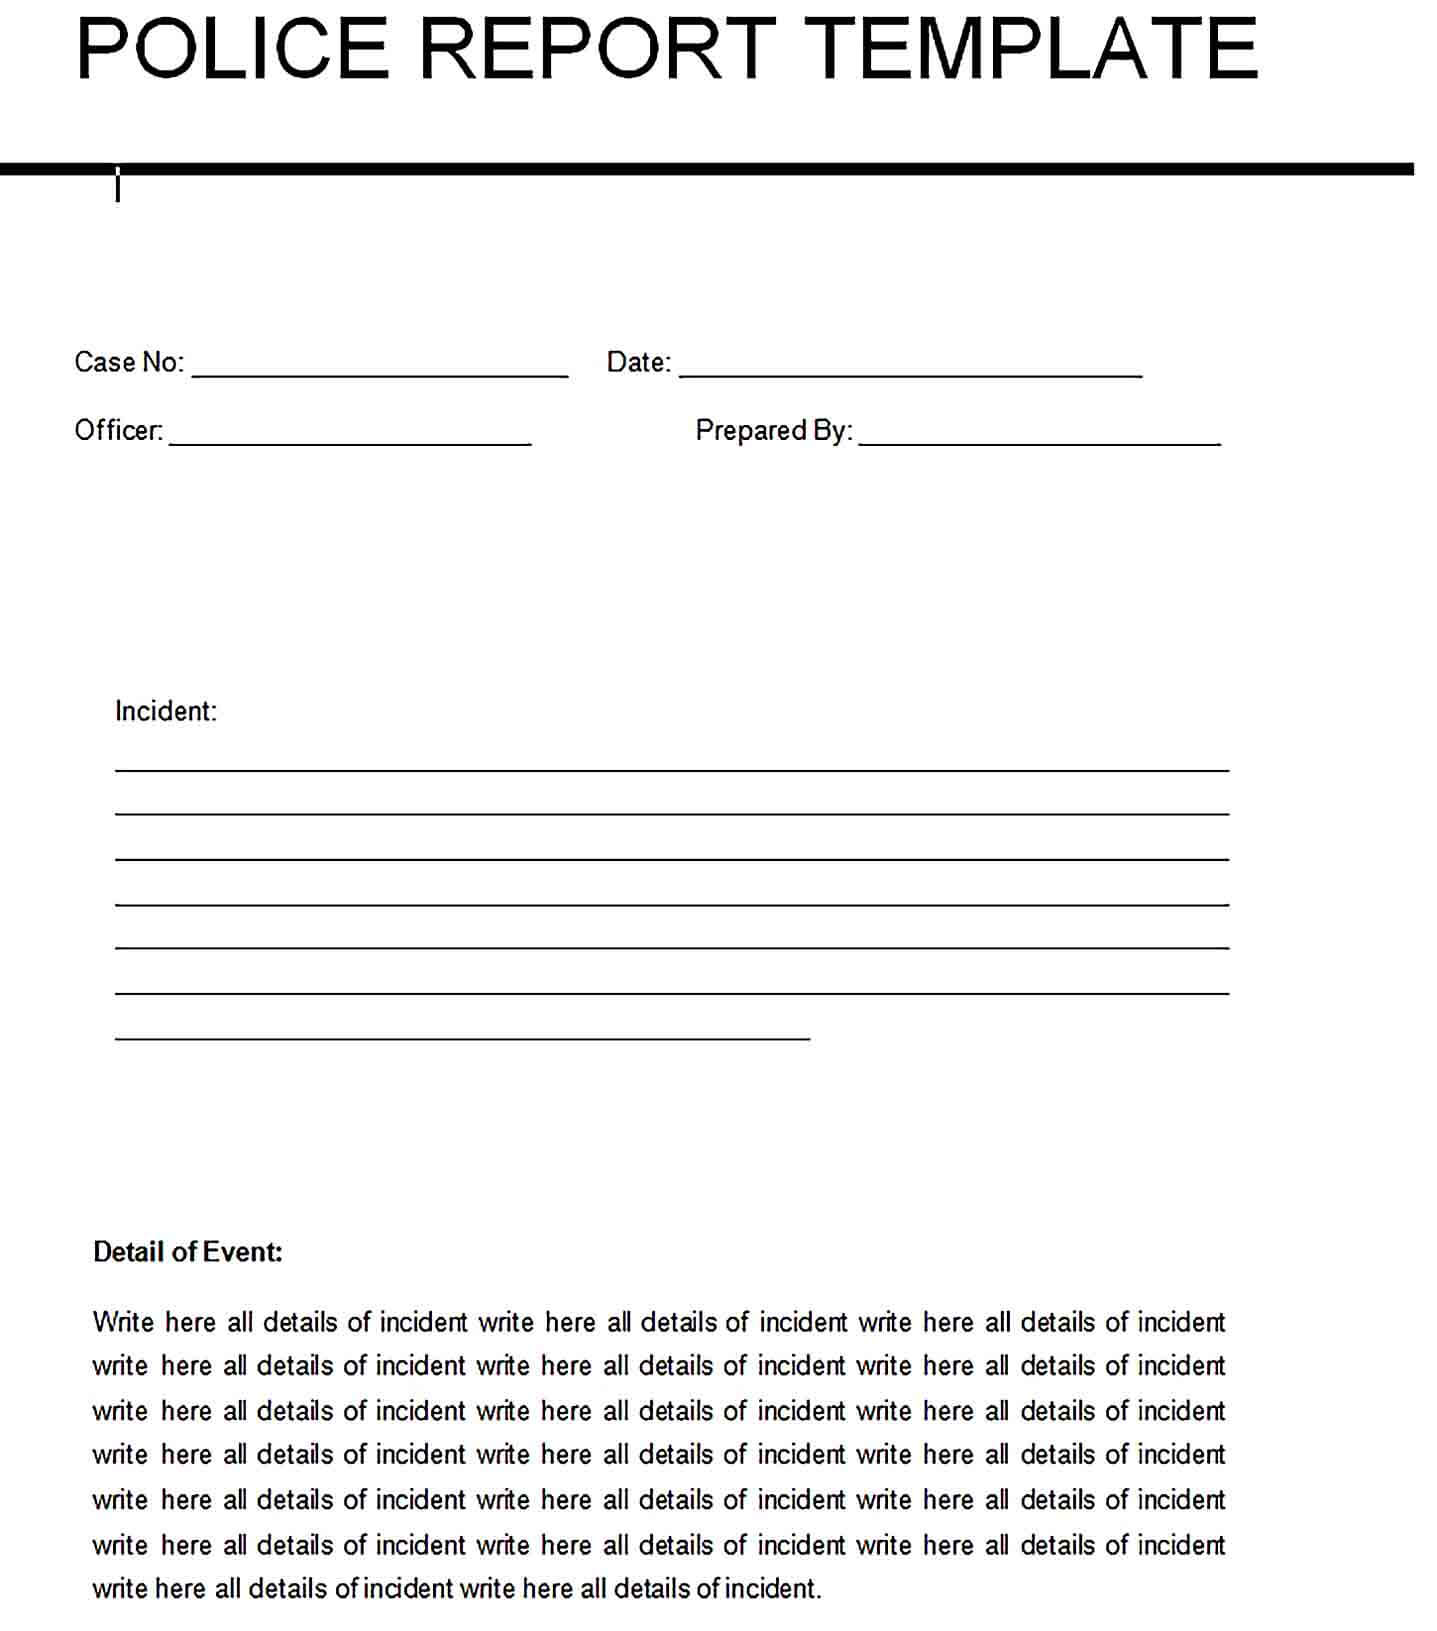 Sample blank police report template 1